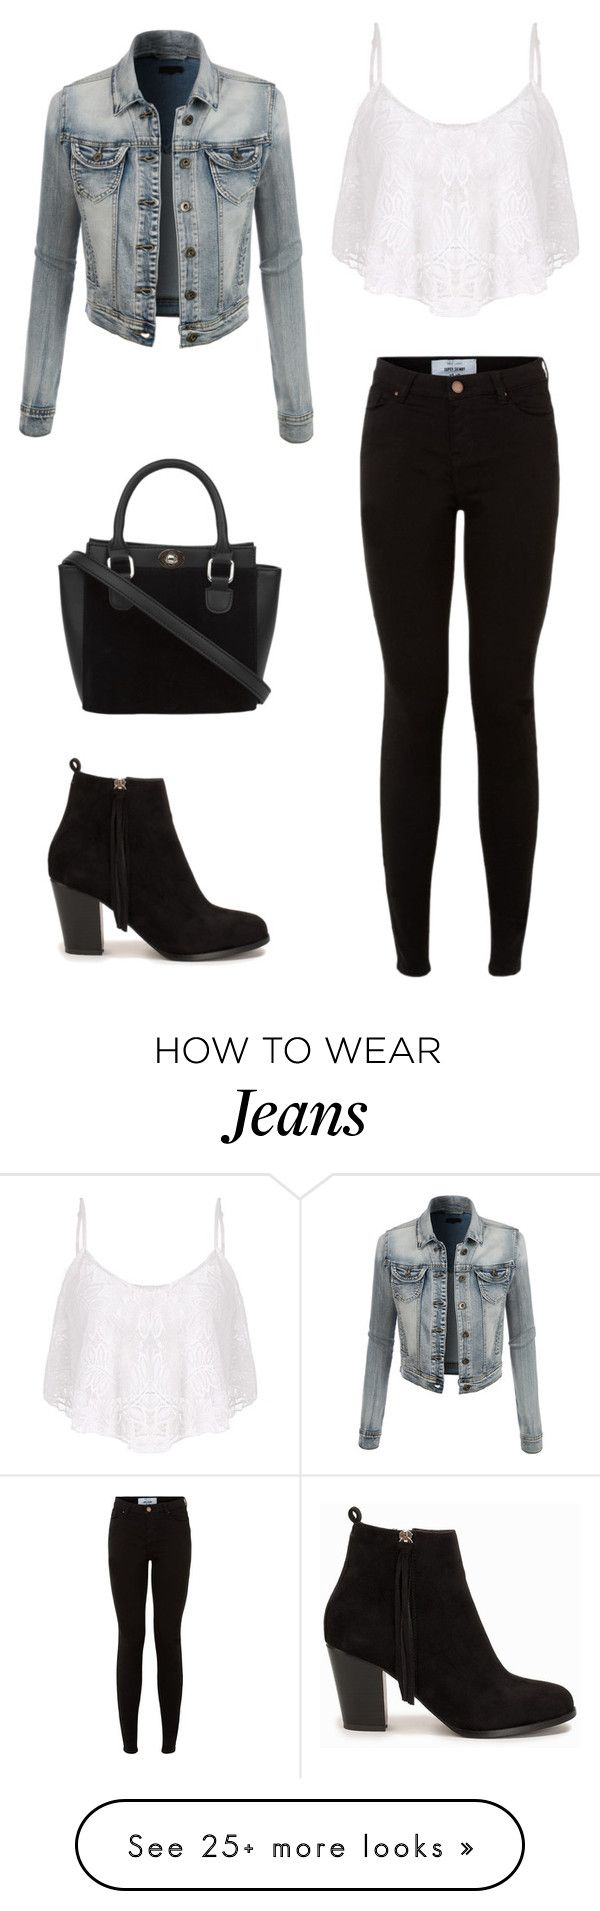 """""""Jeans and Black"""" by hotchickhayastan on Polyvore featuring LE3NO and Nly Shoes"""